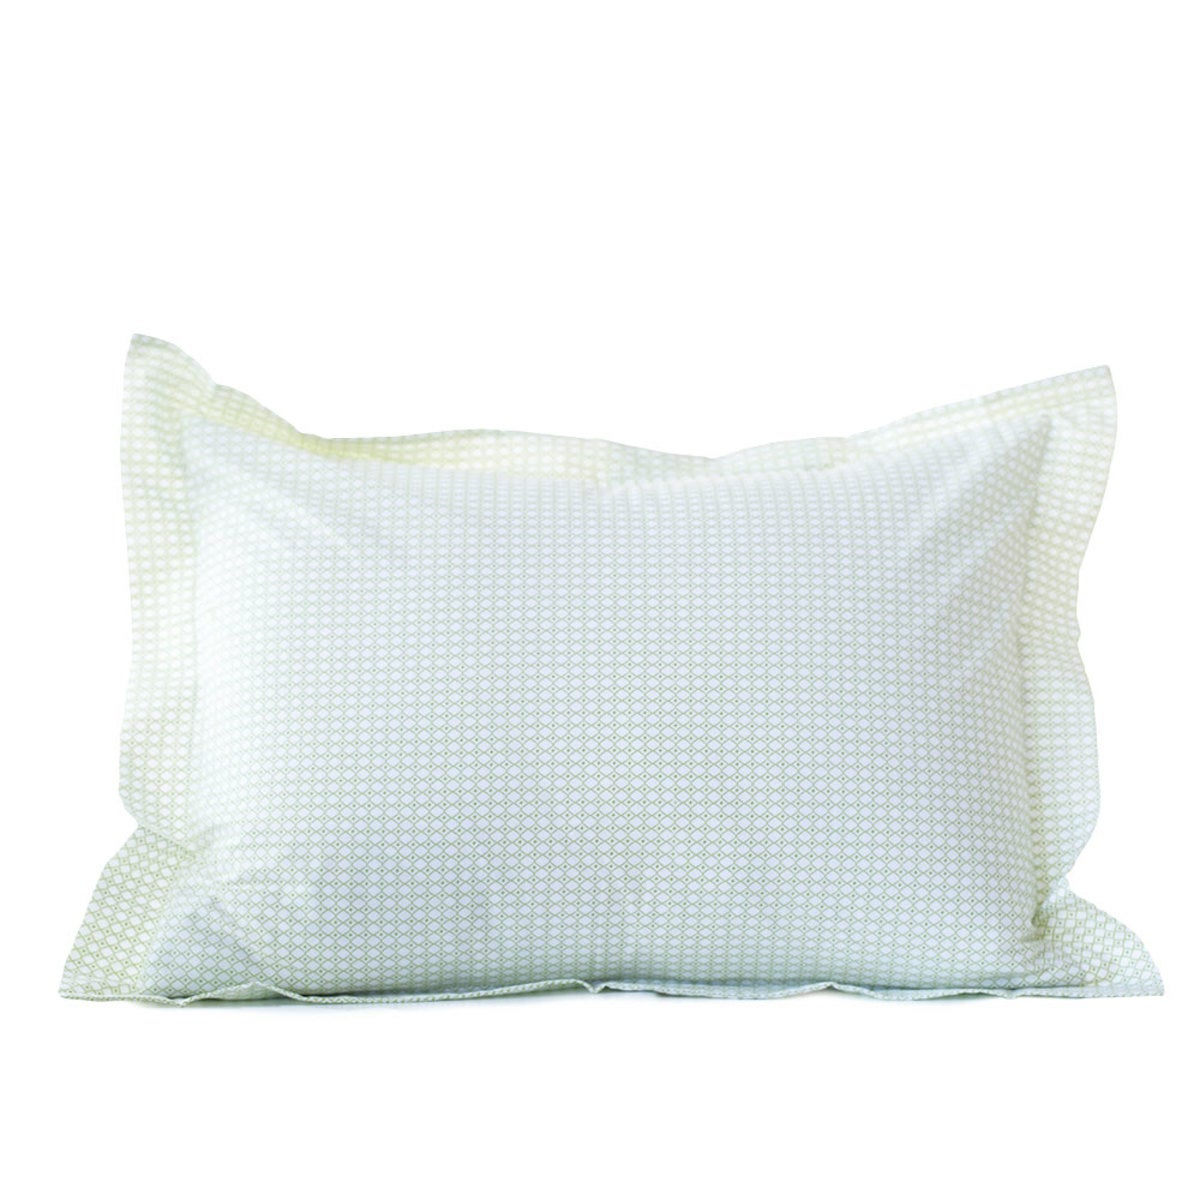 Petite Diamond Organic Sham - King - Green